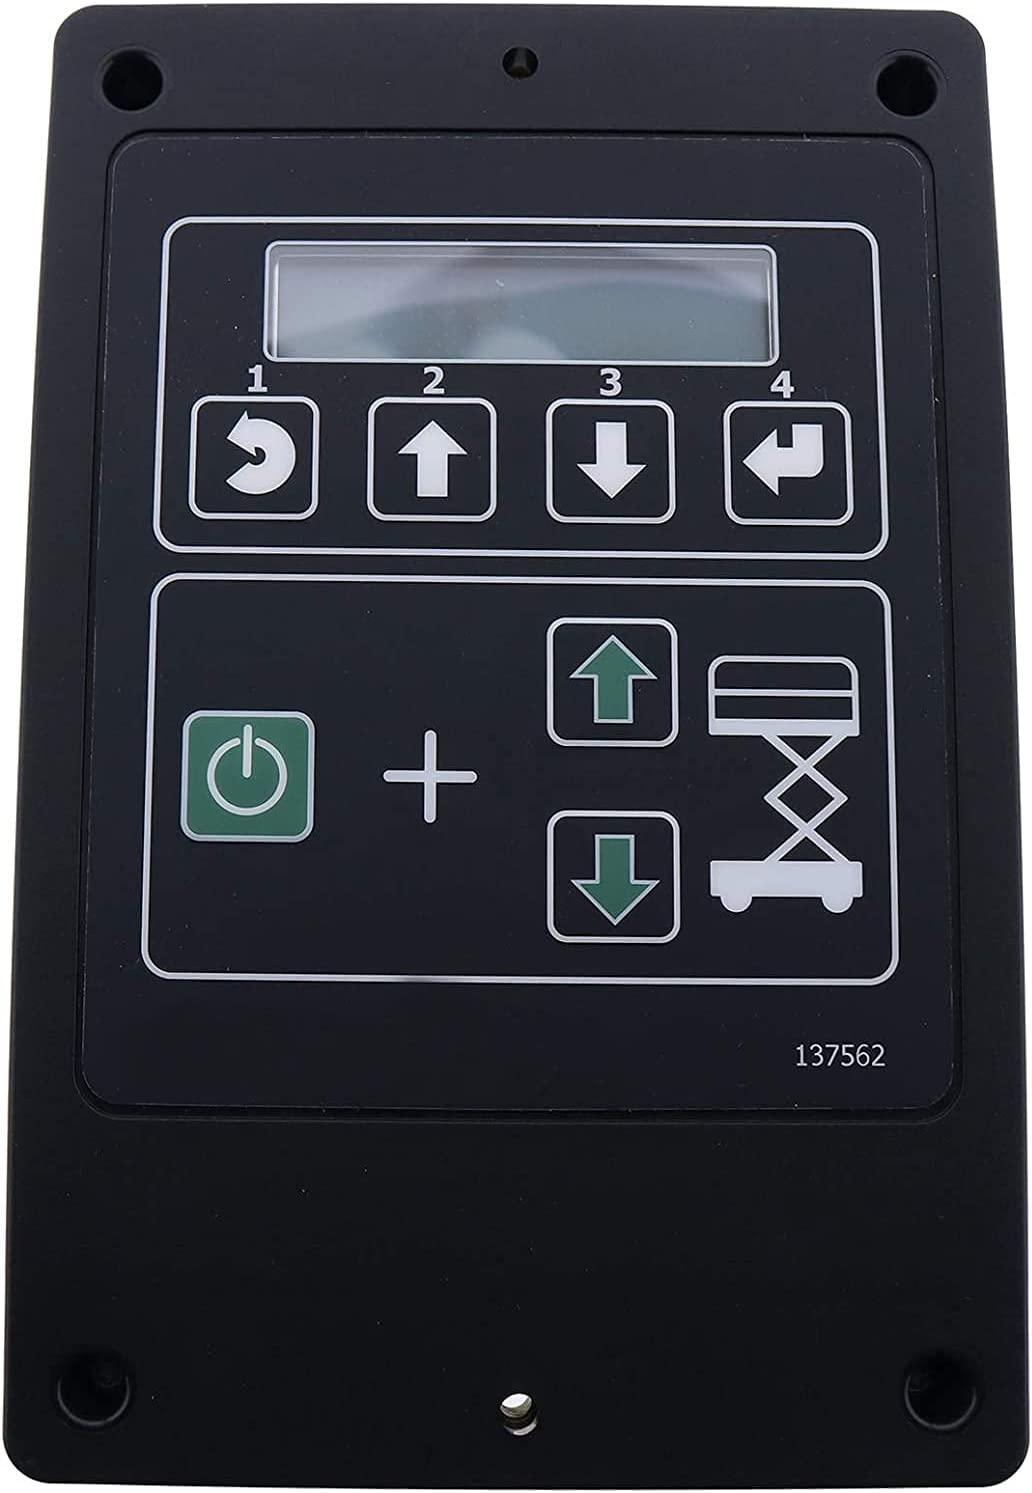 zt truck parts Branded goods Control Award-winning store Box 1256721GT Genie Fit GS-15 1256721 for